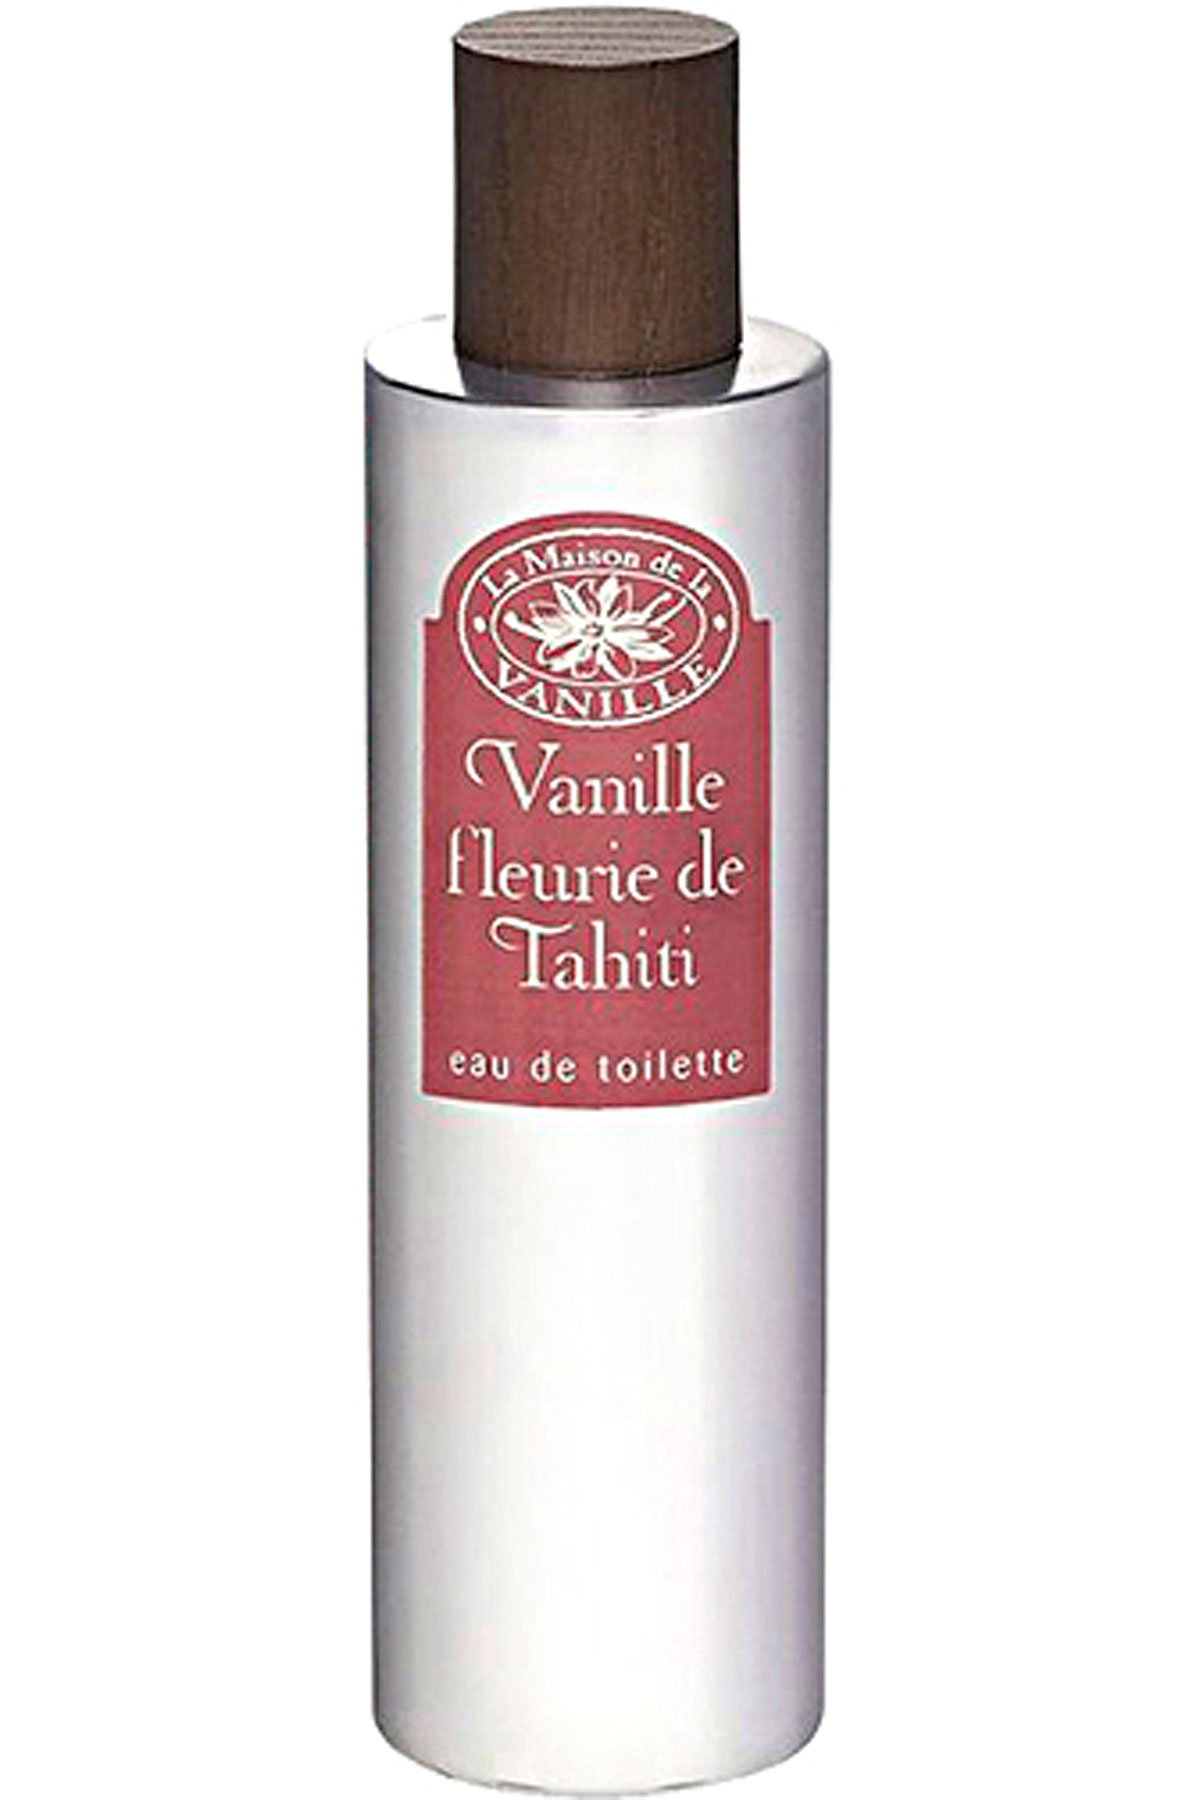 La Maison de la Vanille Fragrances for Women On Sale, Vanille Fleurie De Tahiti - Eau De Toilette - 100 Ml, 2019, 100 ml